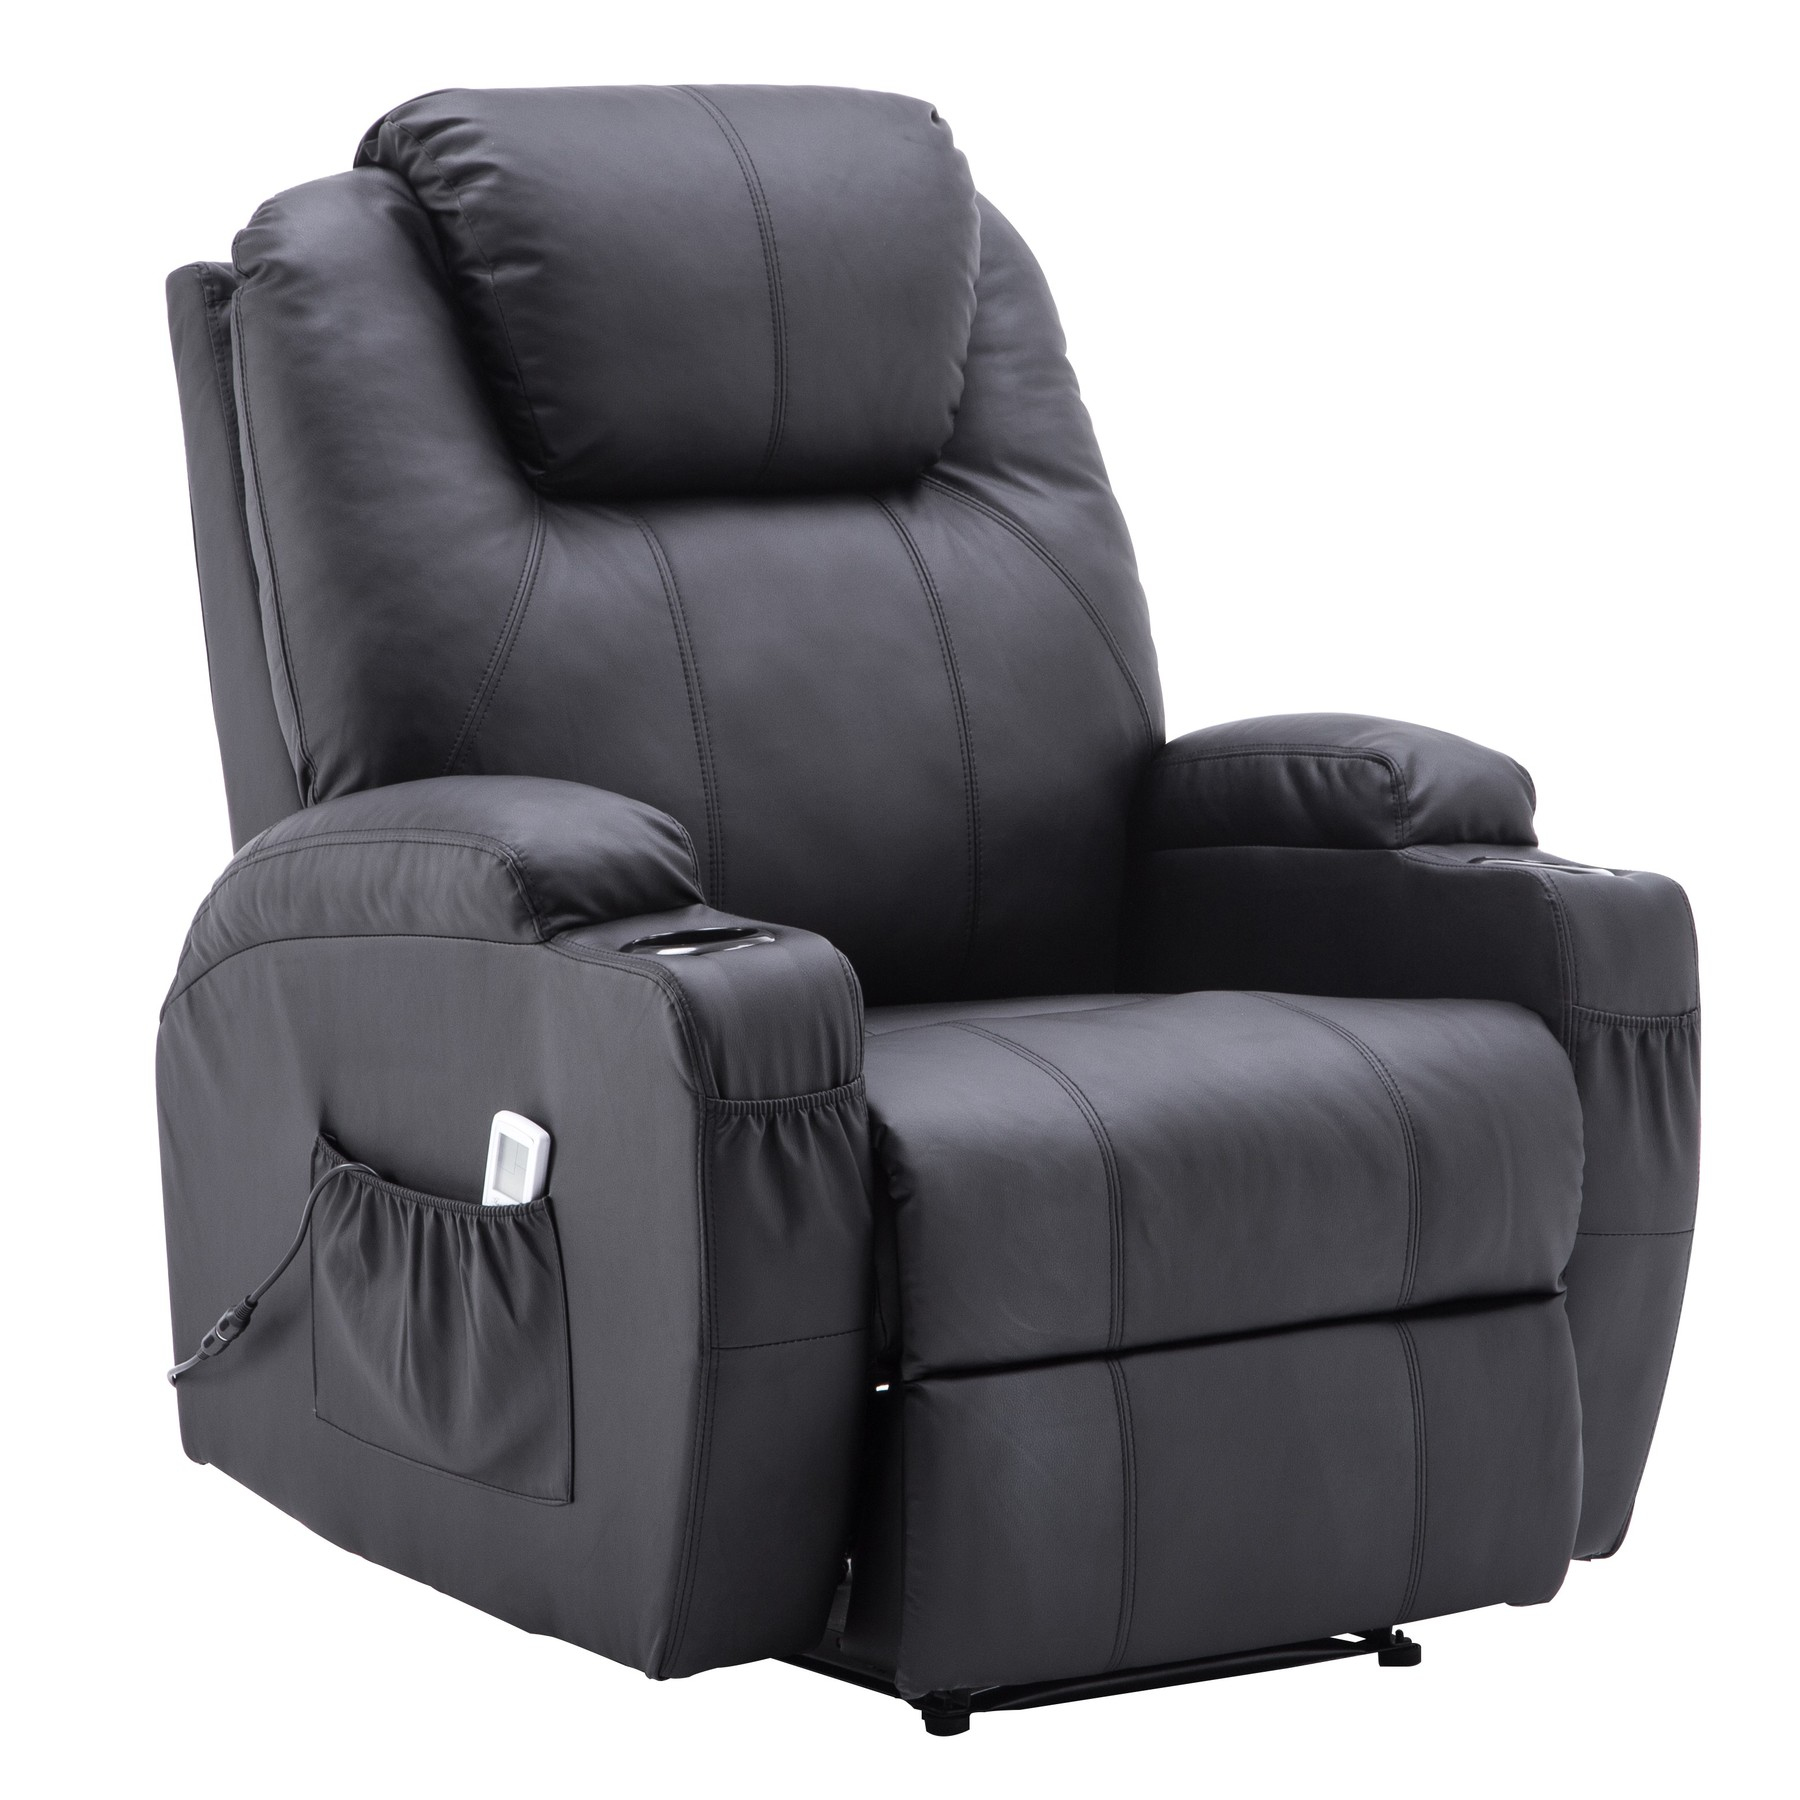 Strange Power Recliner Massage Ergonomic Sofa Vibrating Heated Lounge Chair Faux Leather Dual Cup Holders 7050 Spiritservingveterans Wood Chair Design Ideas Spiritservingveteransorg